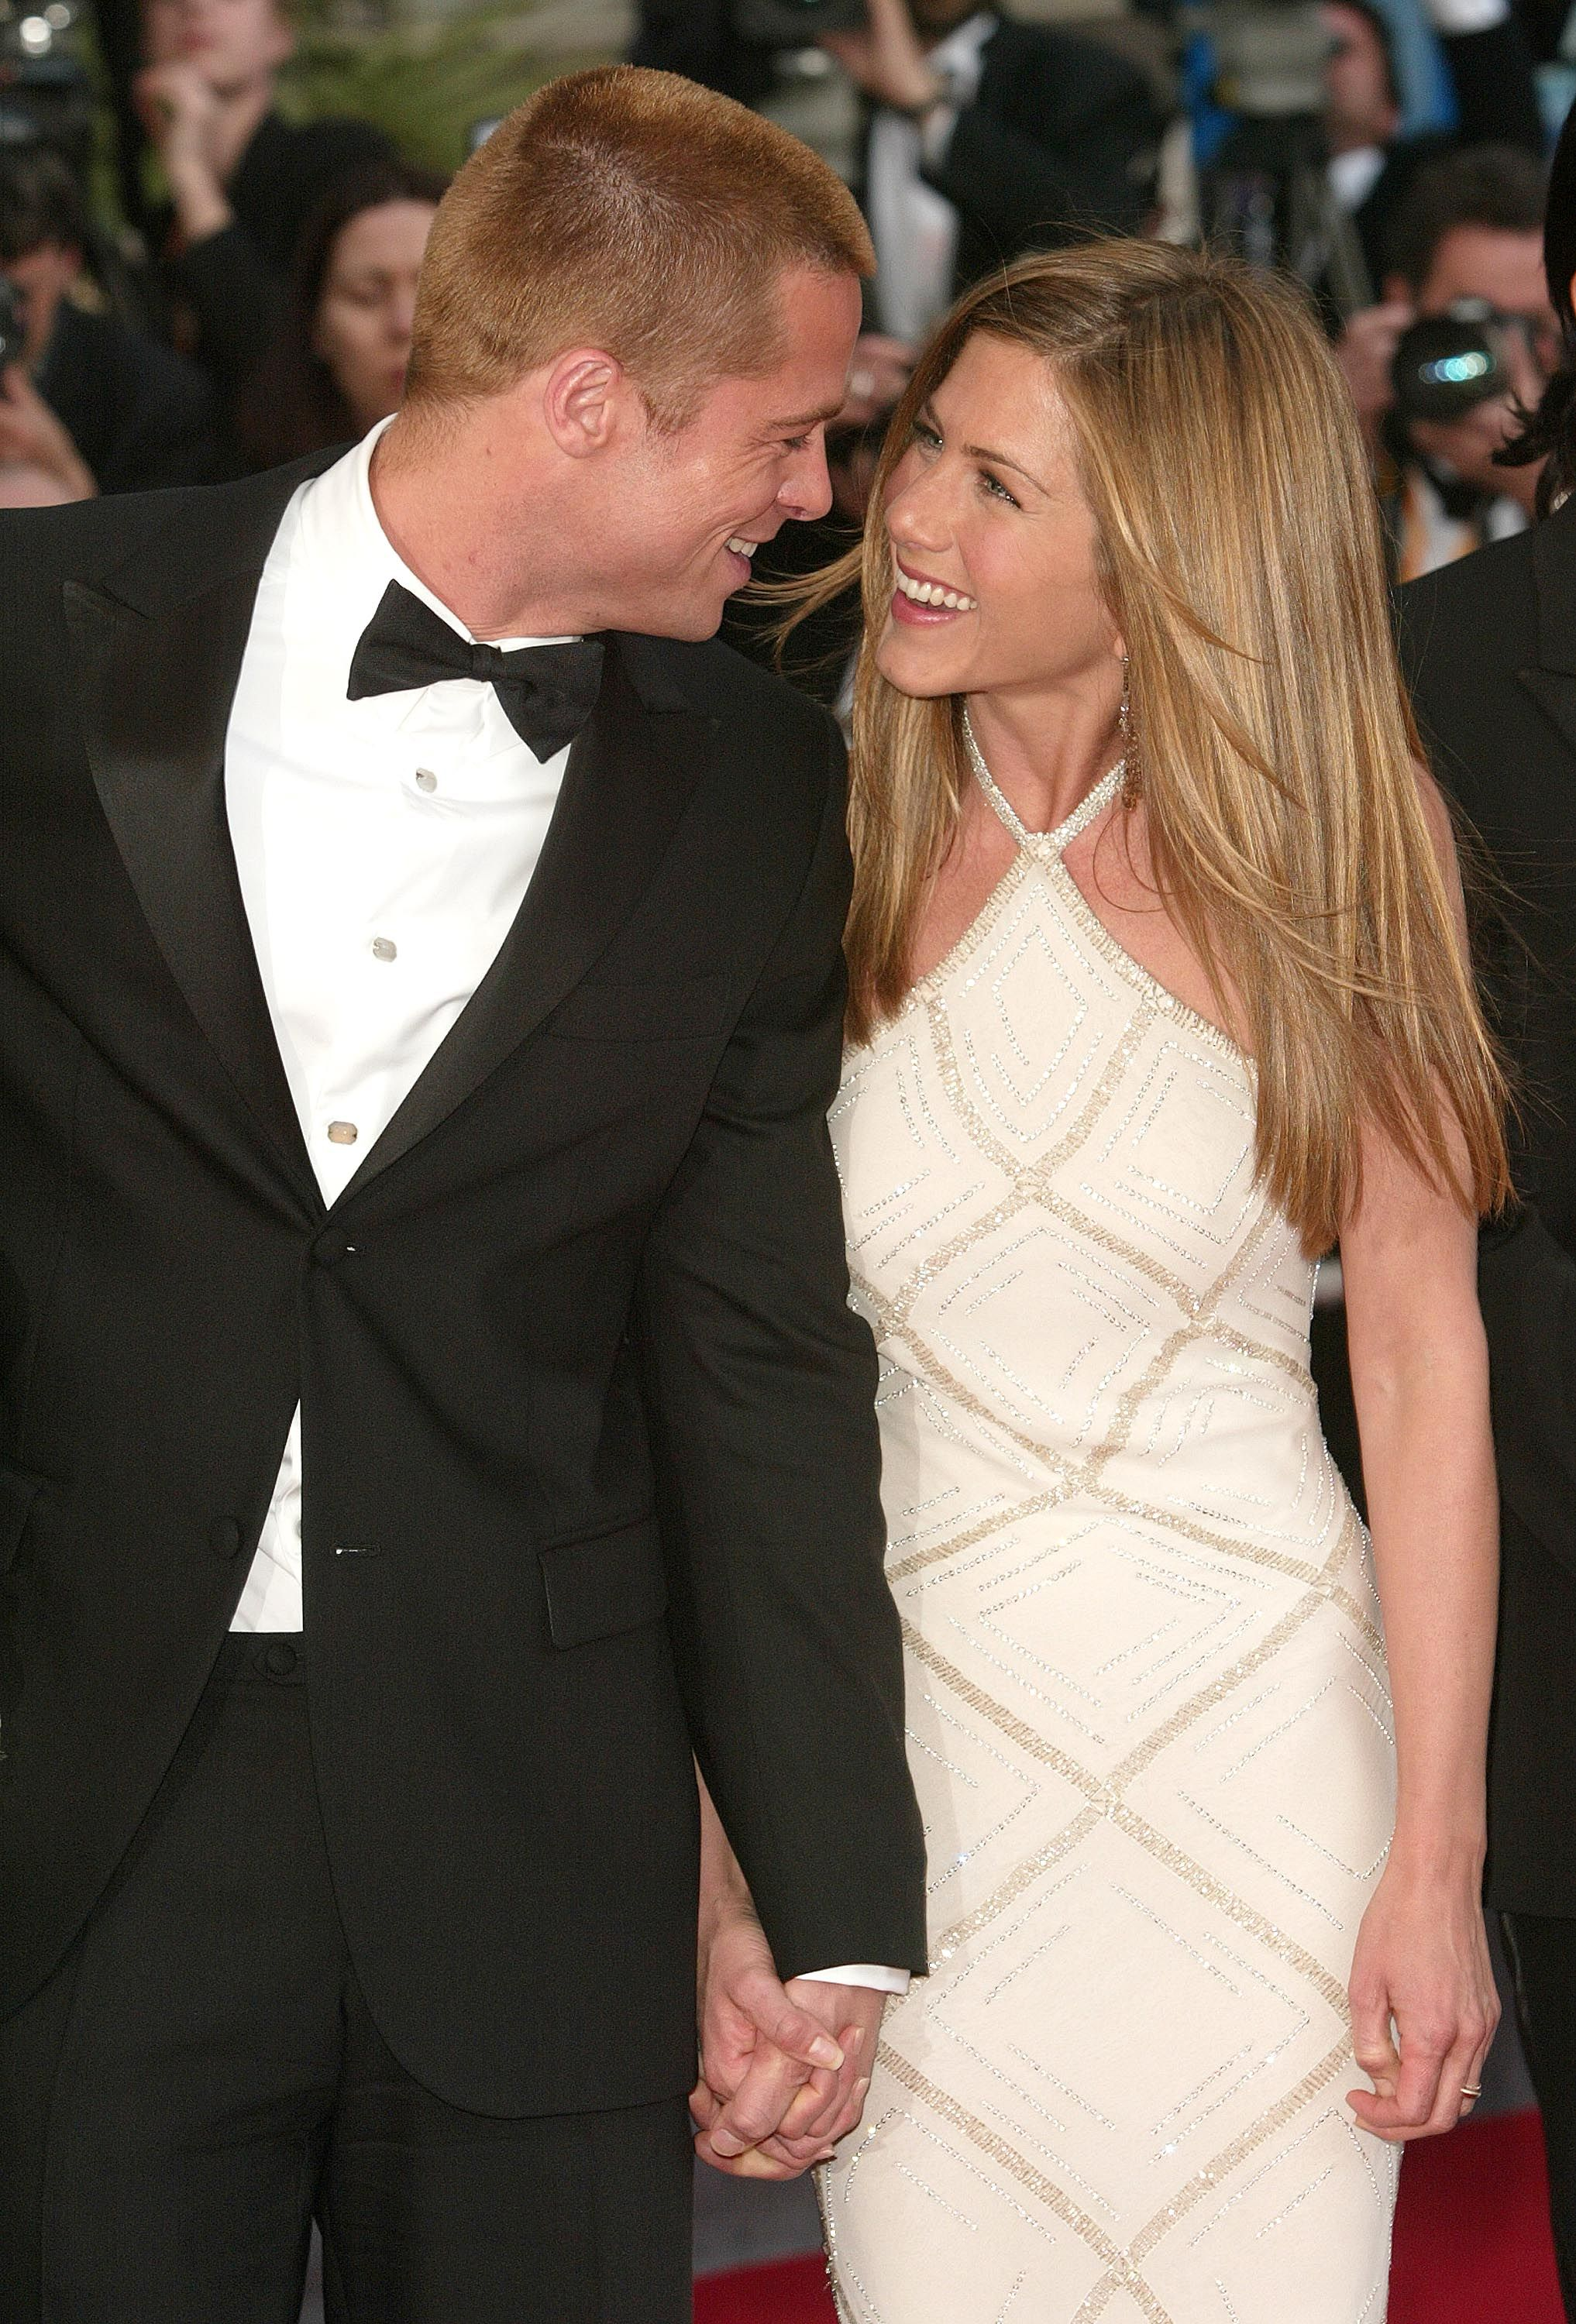 Jennifer Aniston and Brad Pitt Everyone is desperate to set Aniston up, it seems. In 1998 , her and Pitt's agents set them up on a blind date that led to a seven-year relationship.